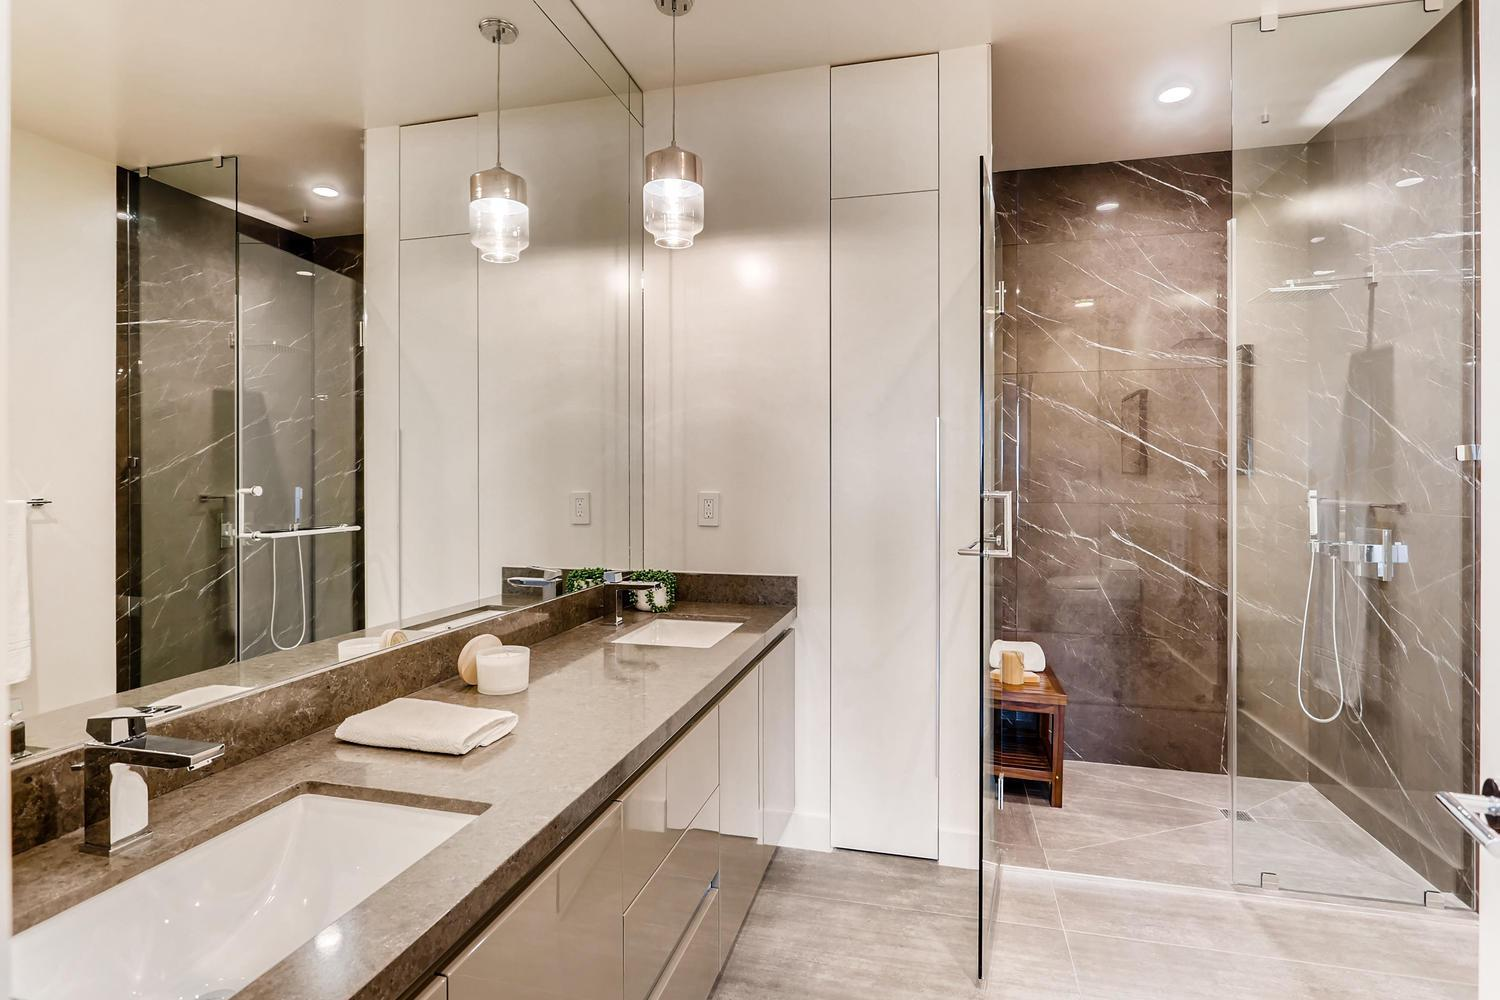 Bathroom featured in the Plan D By Adept Urban  in Los Angeles, CA